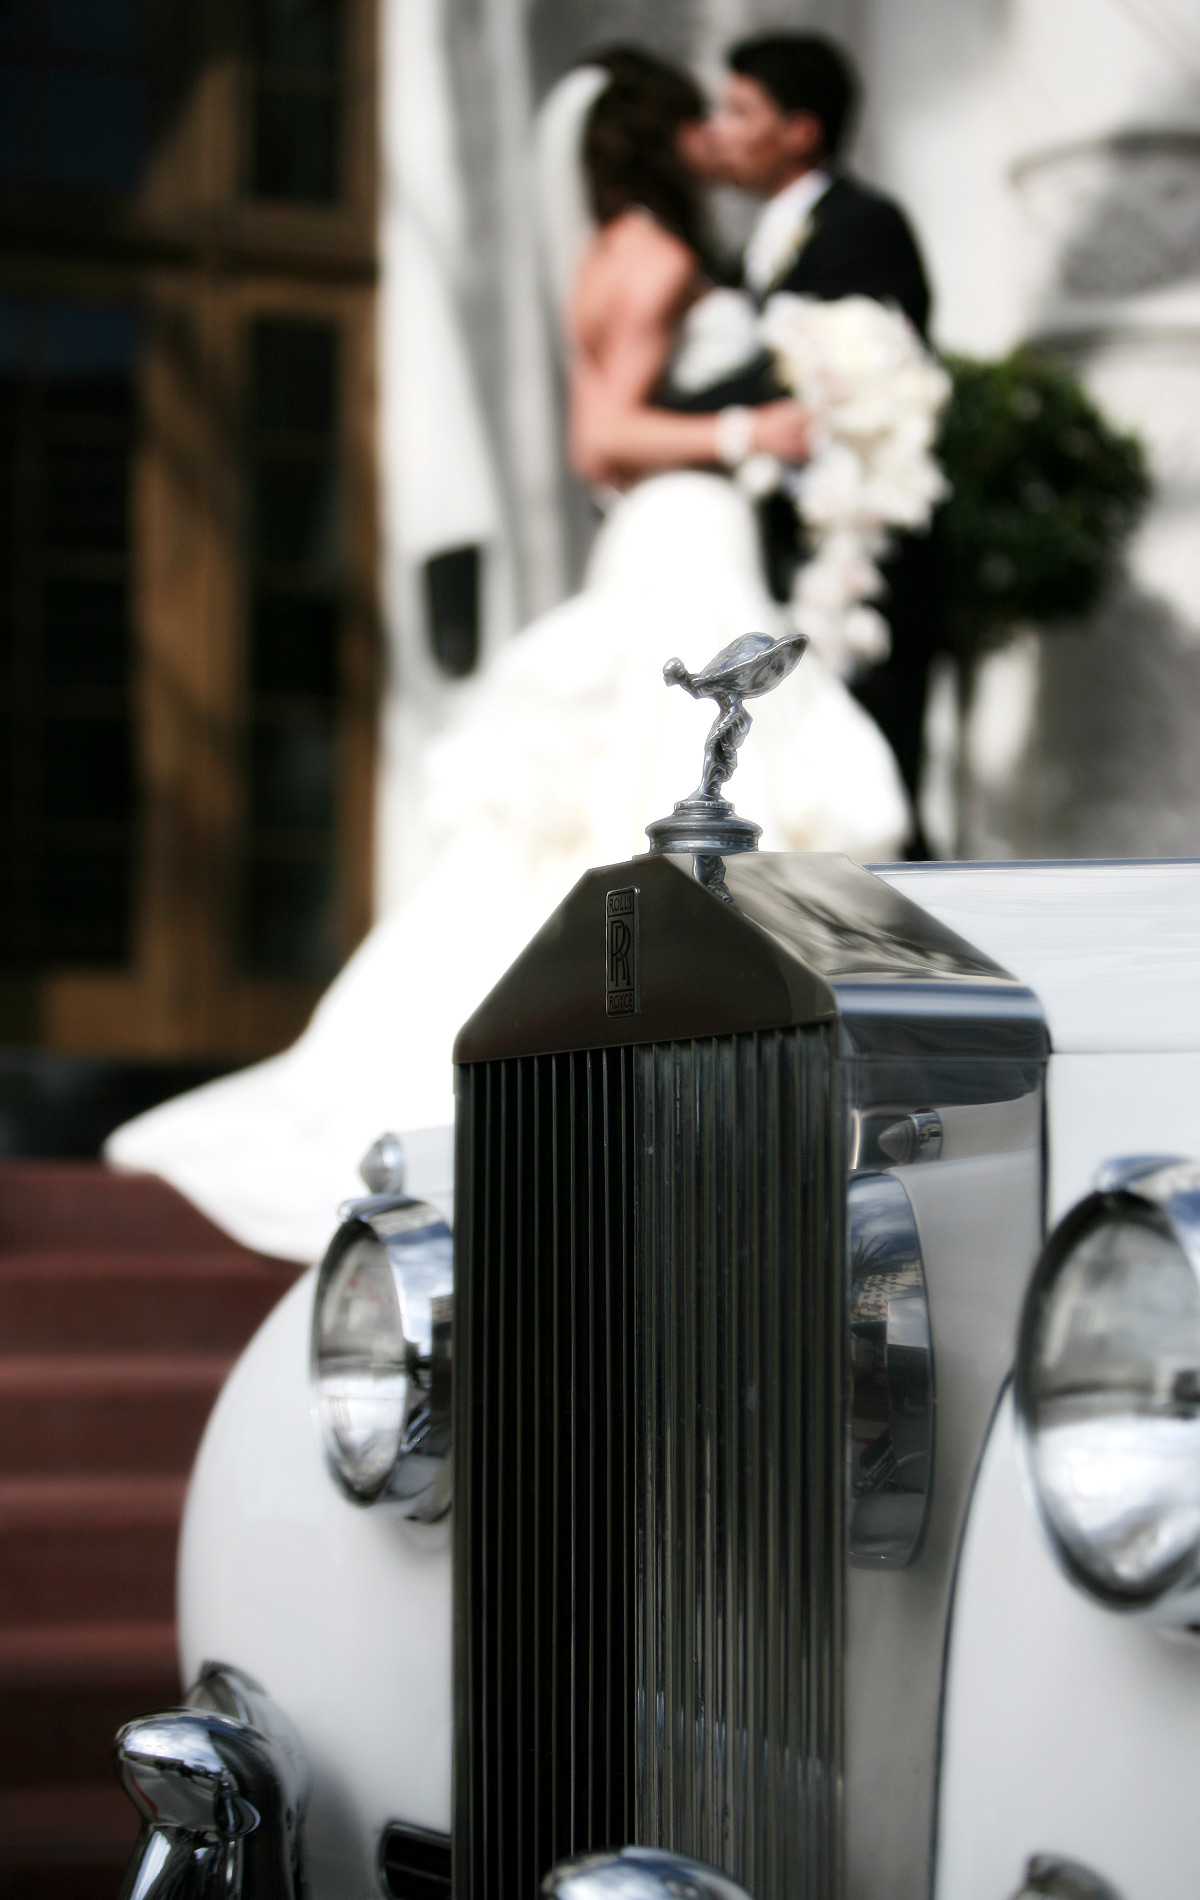 ShadowcatcherGalleryOne_SanDiegoWeddingPhotogrpaher_077.jpg